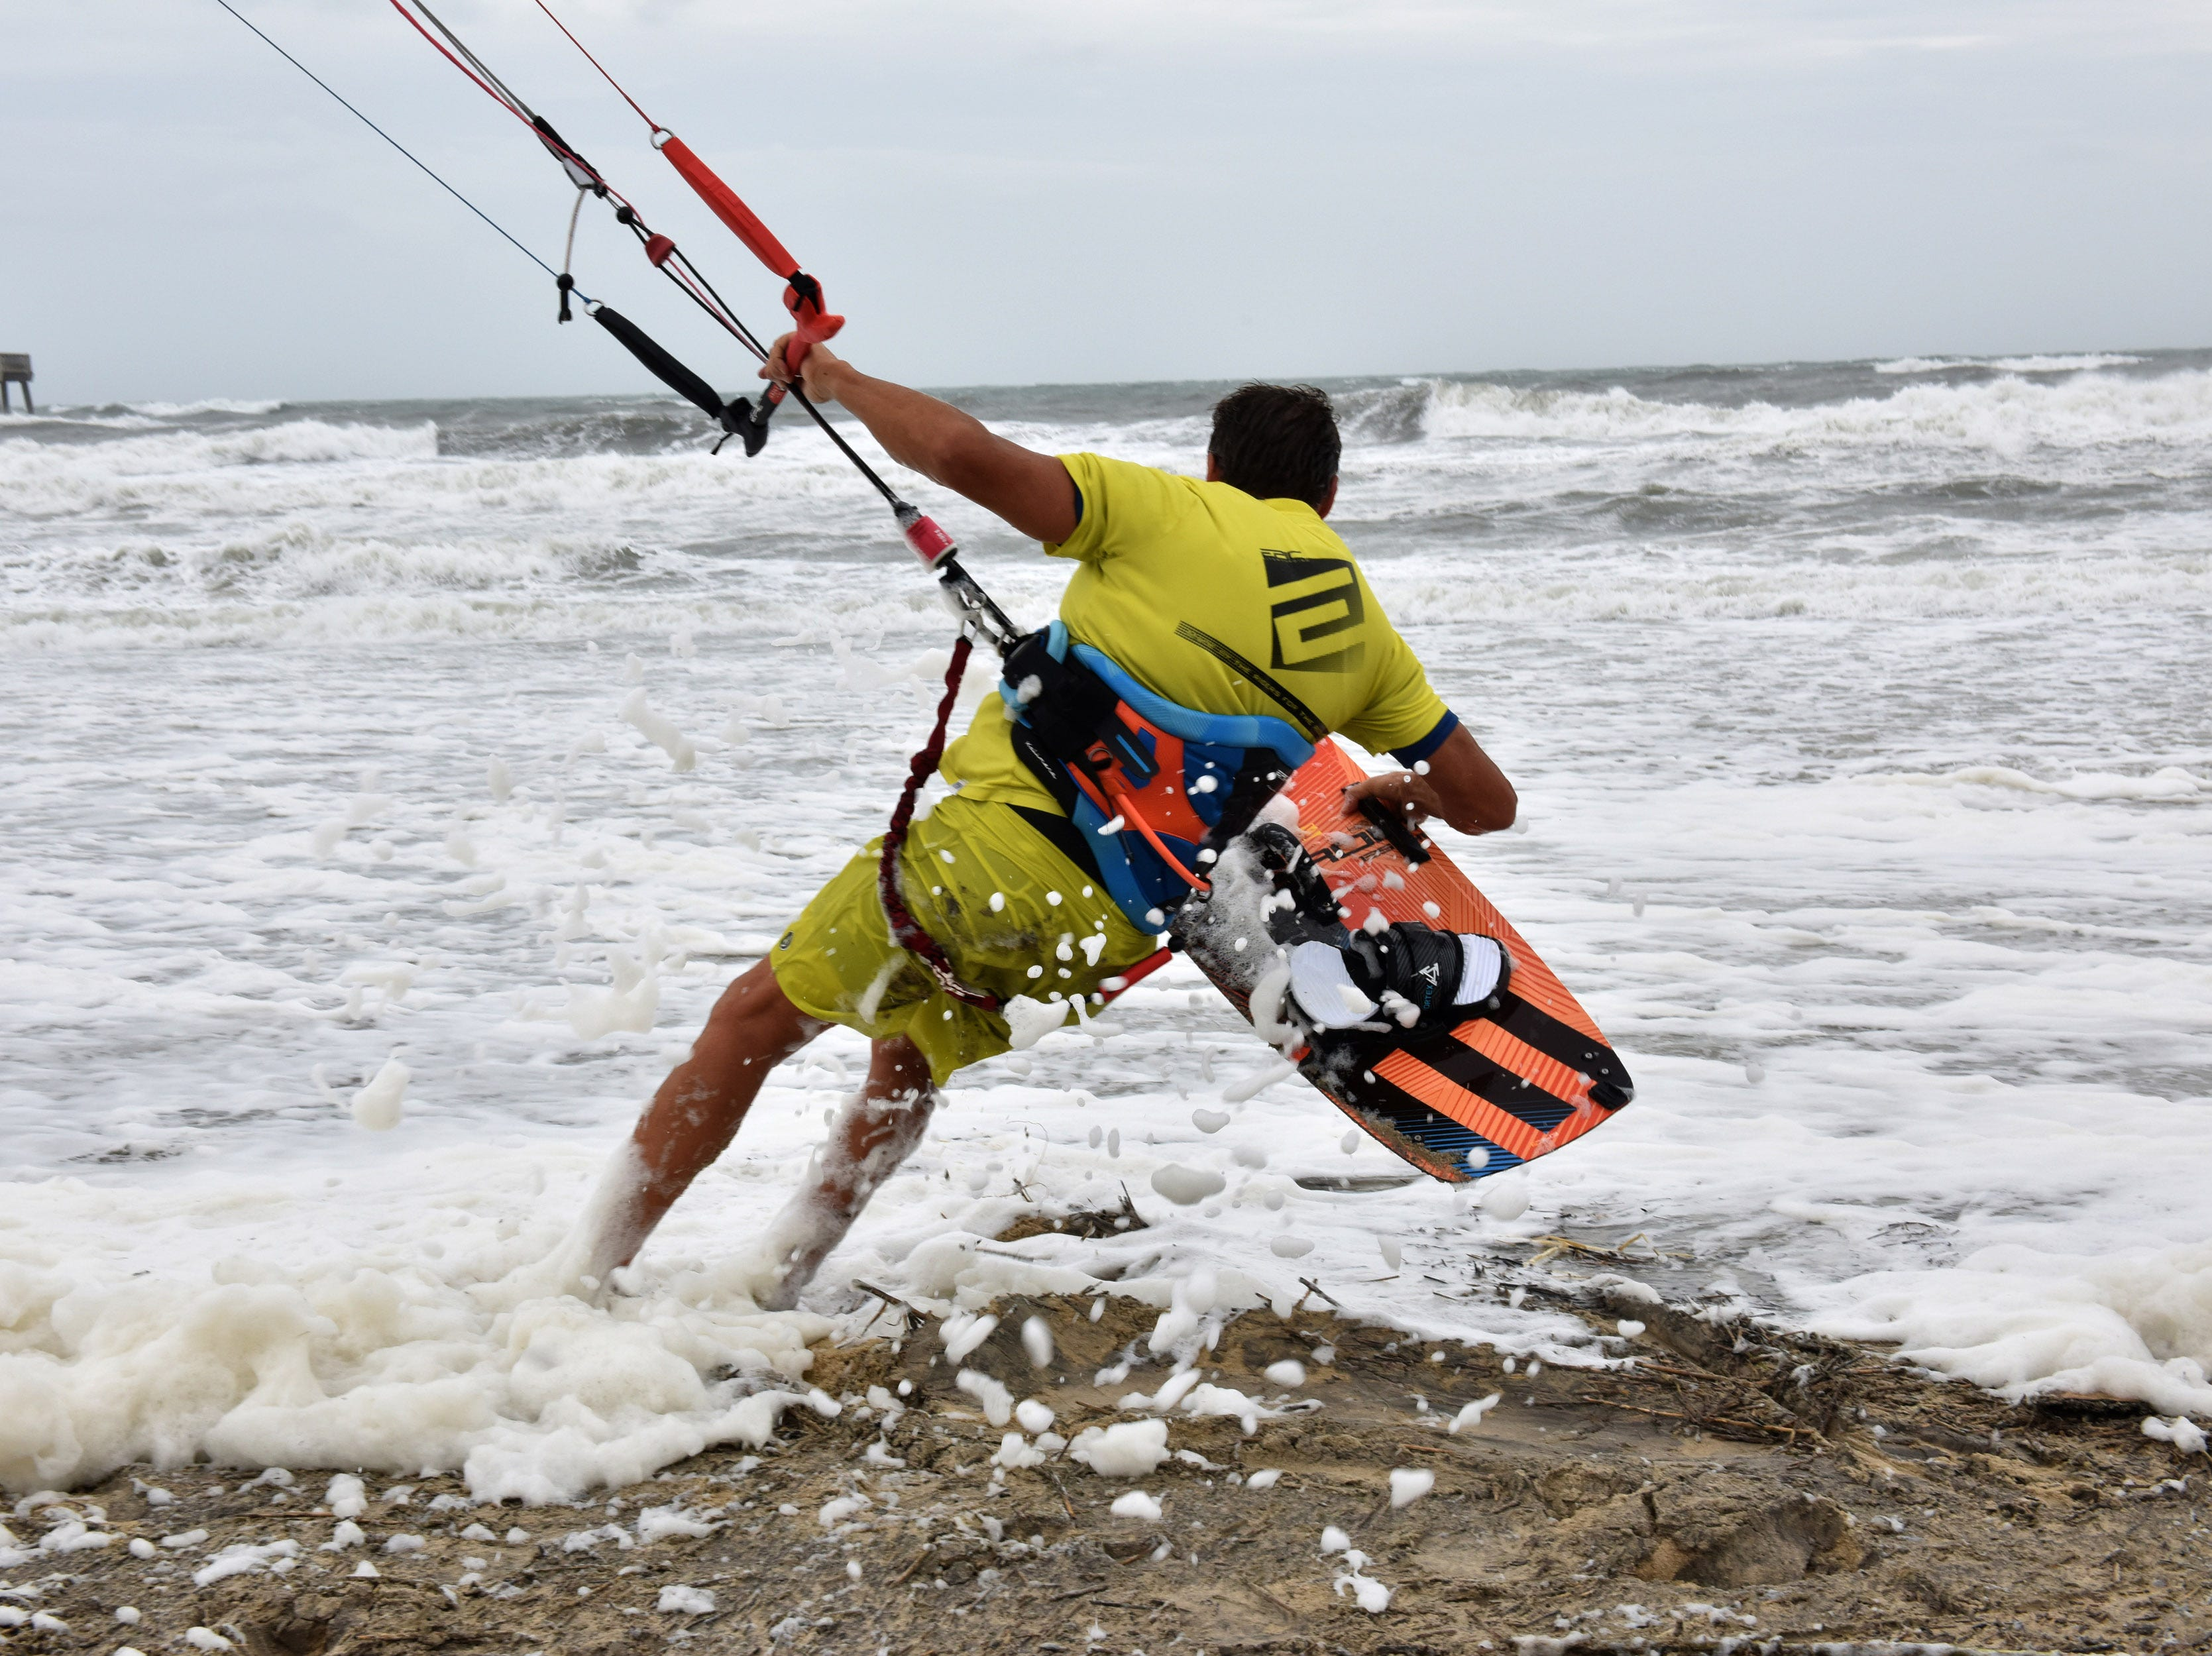 September 14, 2018; Nags Head, NC, USA; Dimitri Maramebnides heads back into the Atlantic Ocean to kite surf in Nags Head, N.C. in the Outer Banks on Friday morning September 14, 2018.